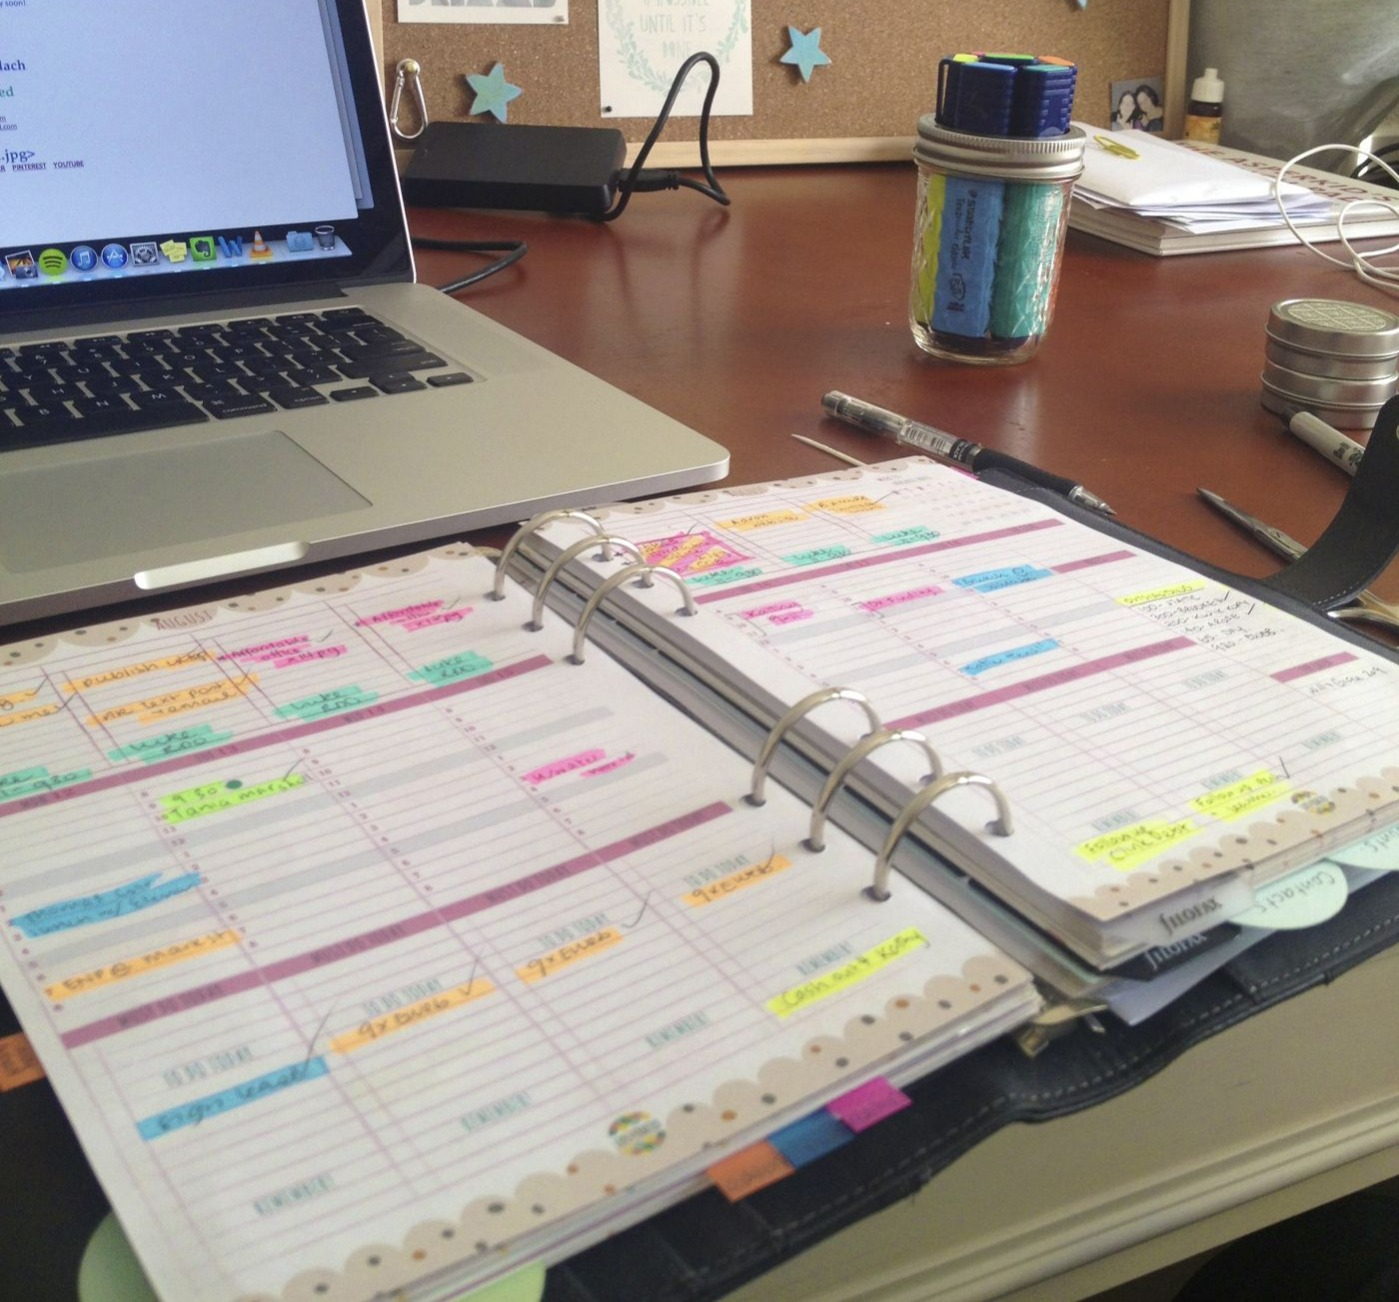 organized desk space planner planning goal setting